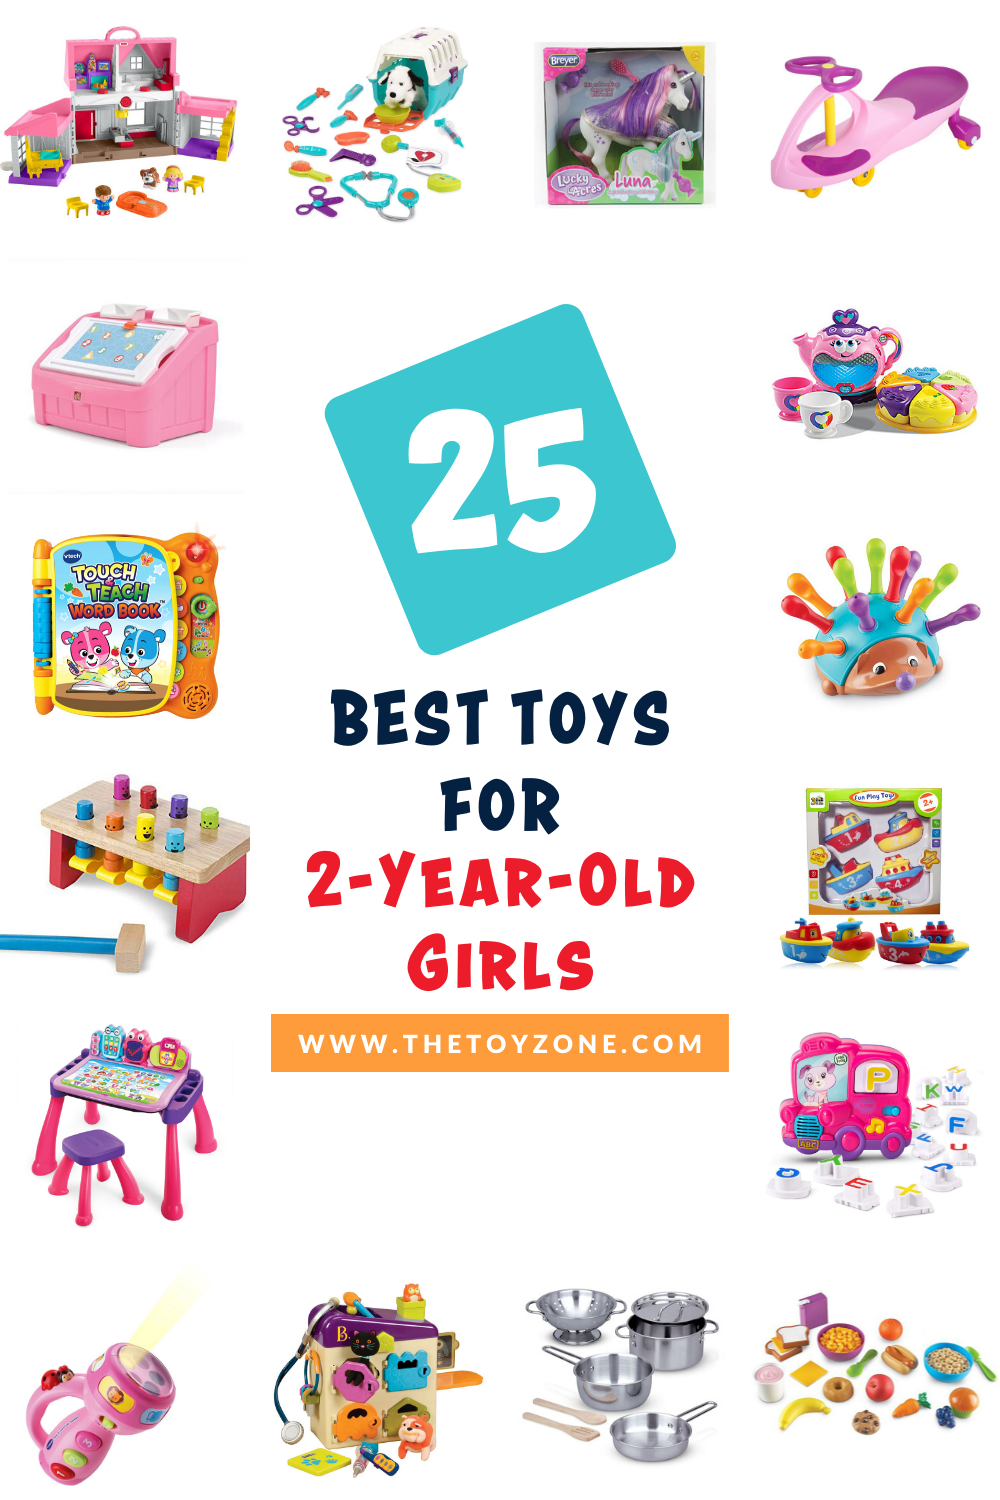 25 Best Toys for 2-Year-Old Girls in 2020 - TheToyZone ...